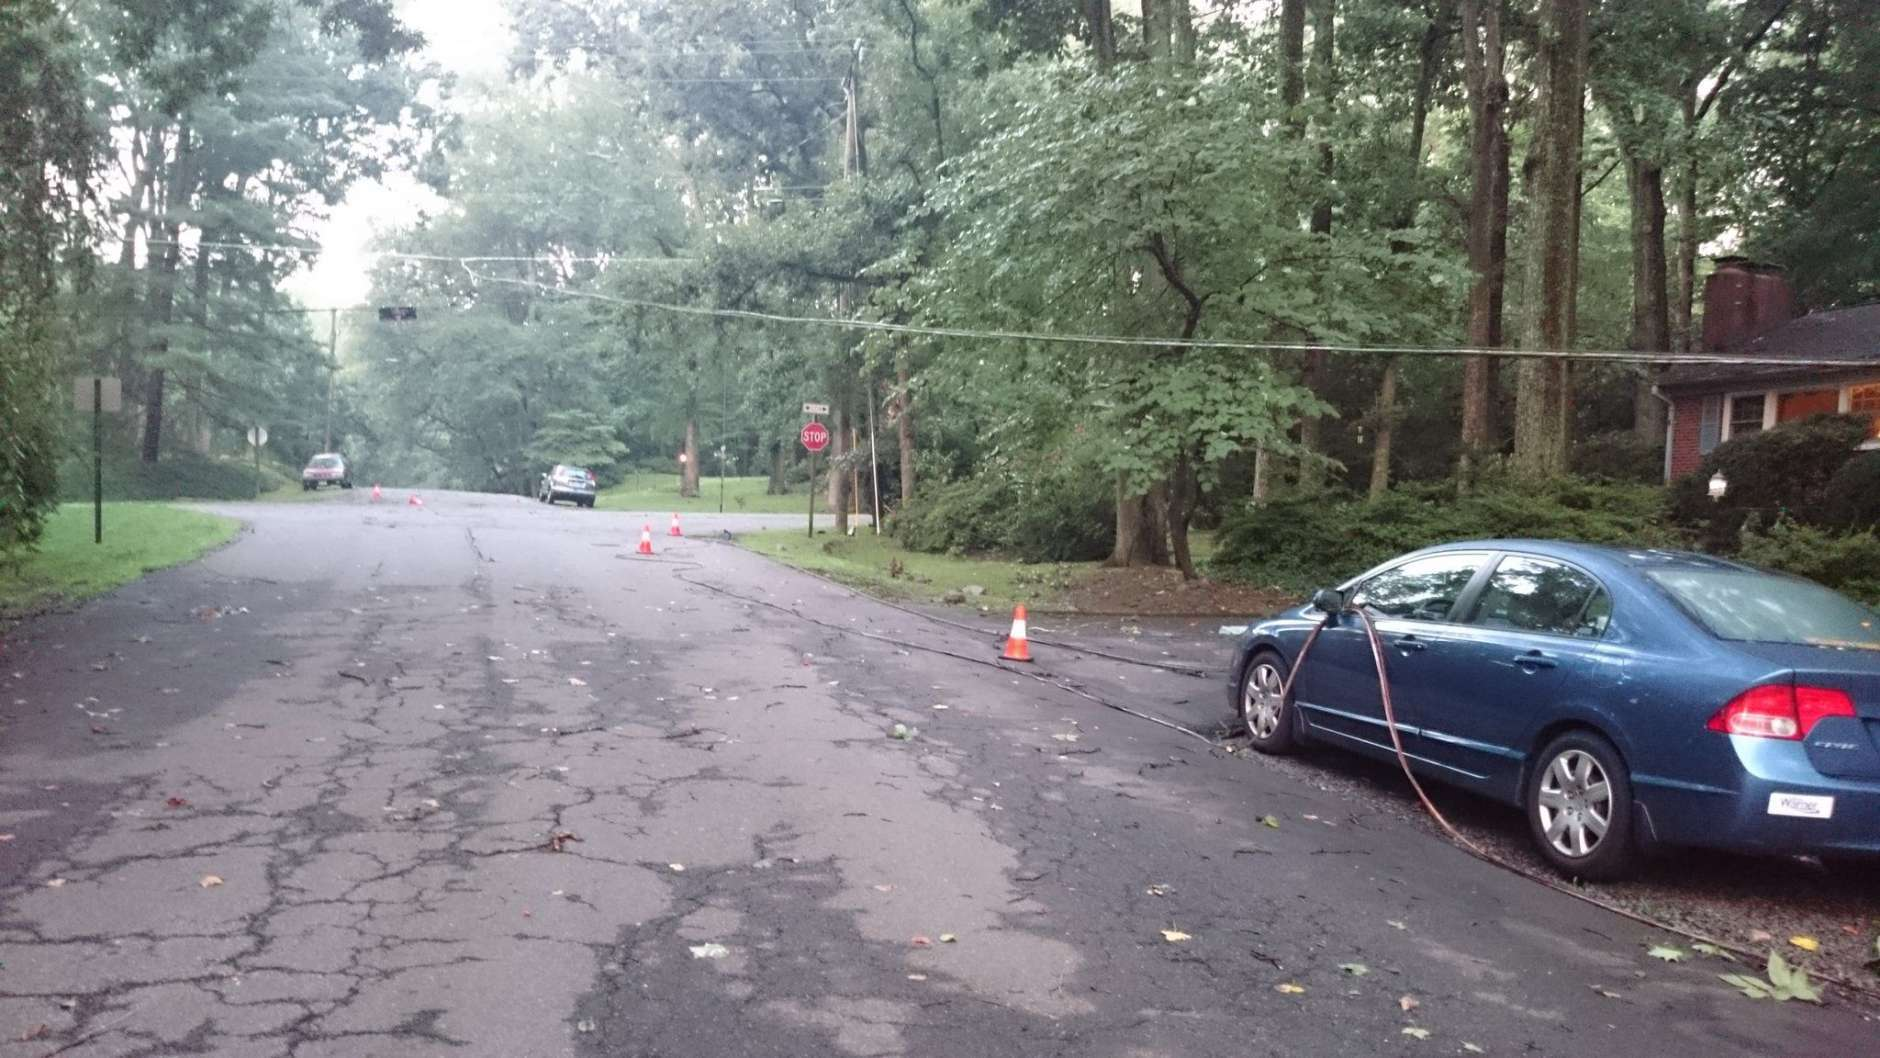 Thursday's powerful storm knocked down trees in Virginia. (WTOP/Dennis Foley)